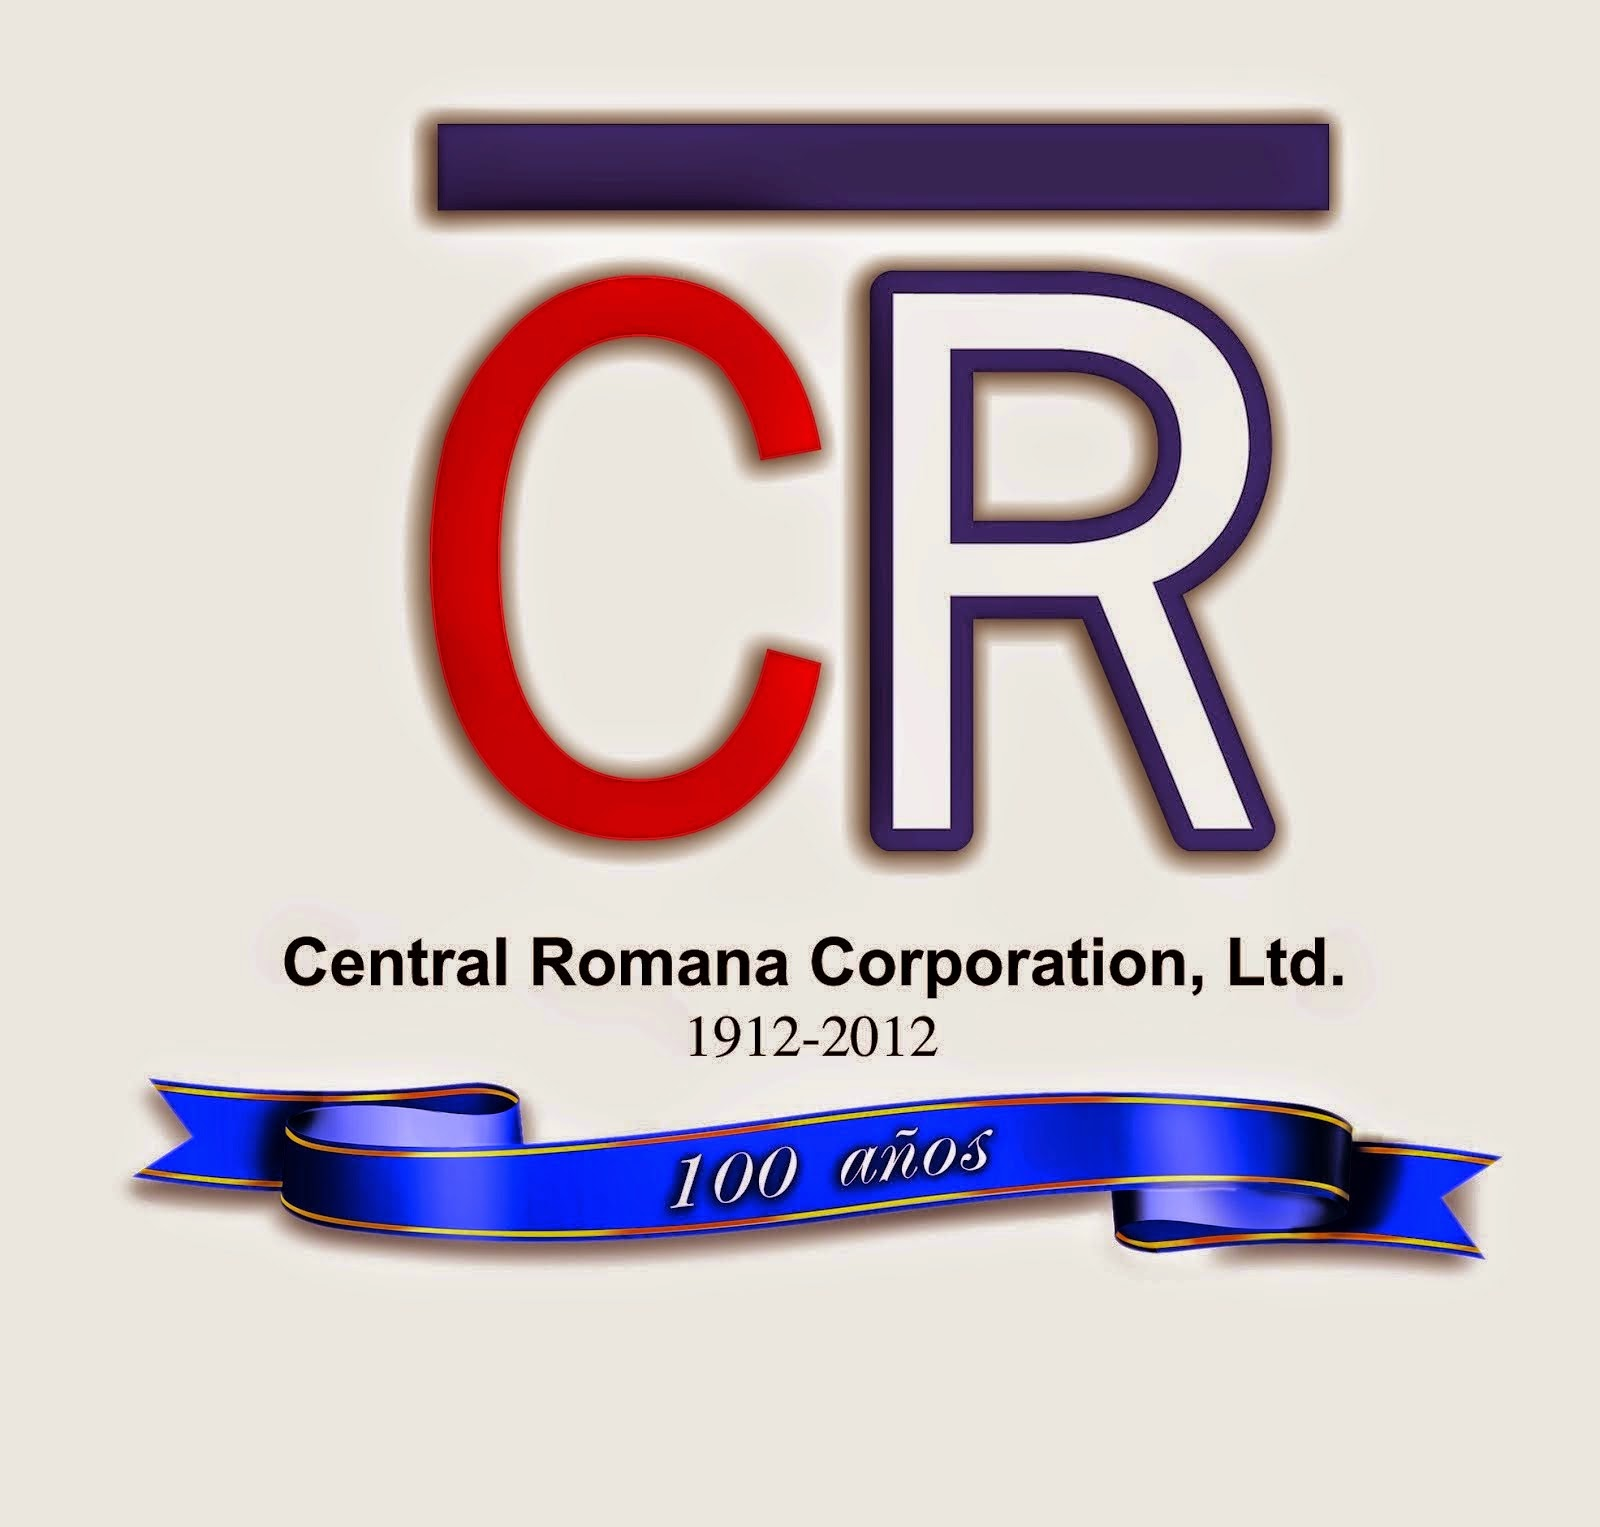 CENTRAL ROMANA CORPORATION